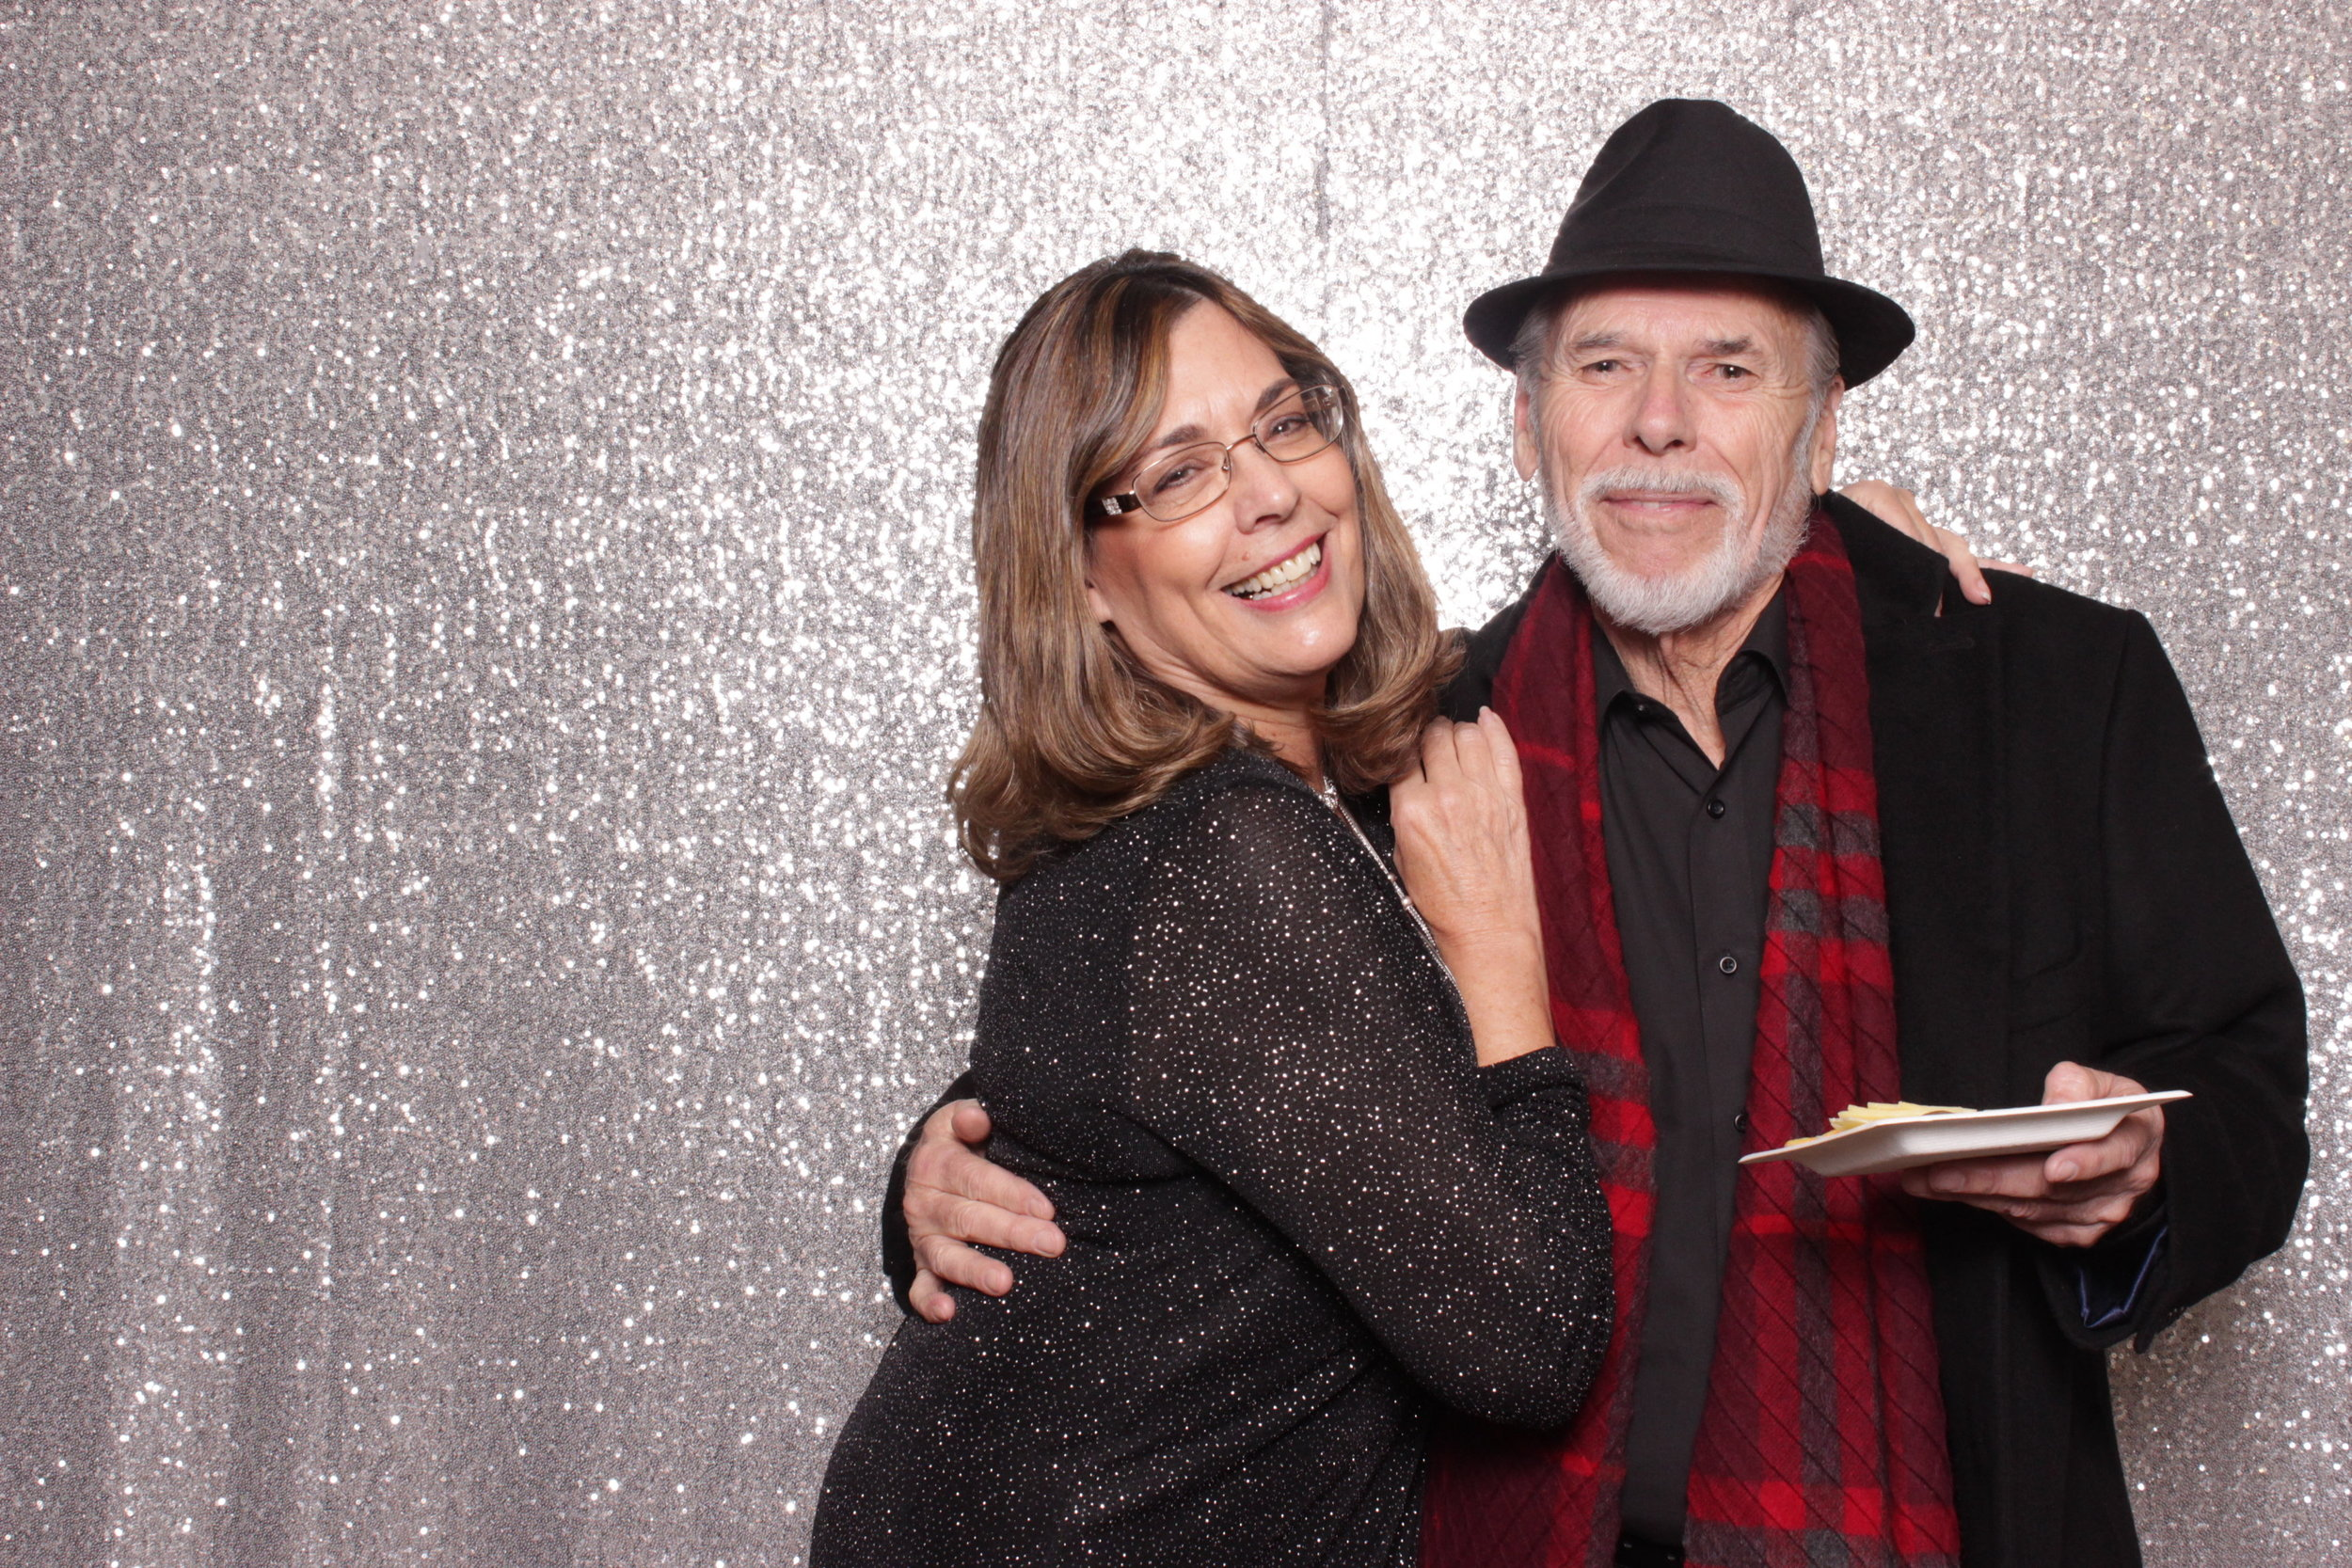 Chico-photo-booth-rental-Hulas-party